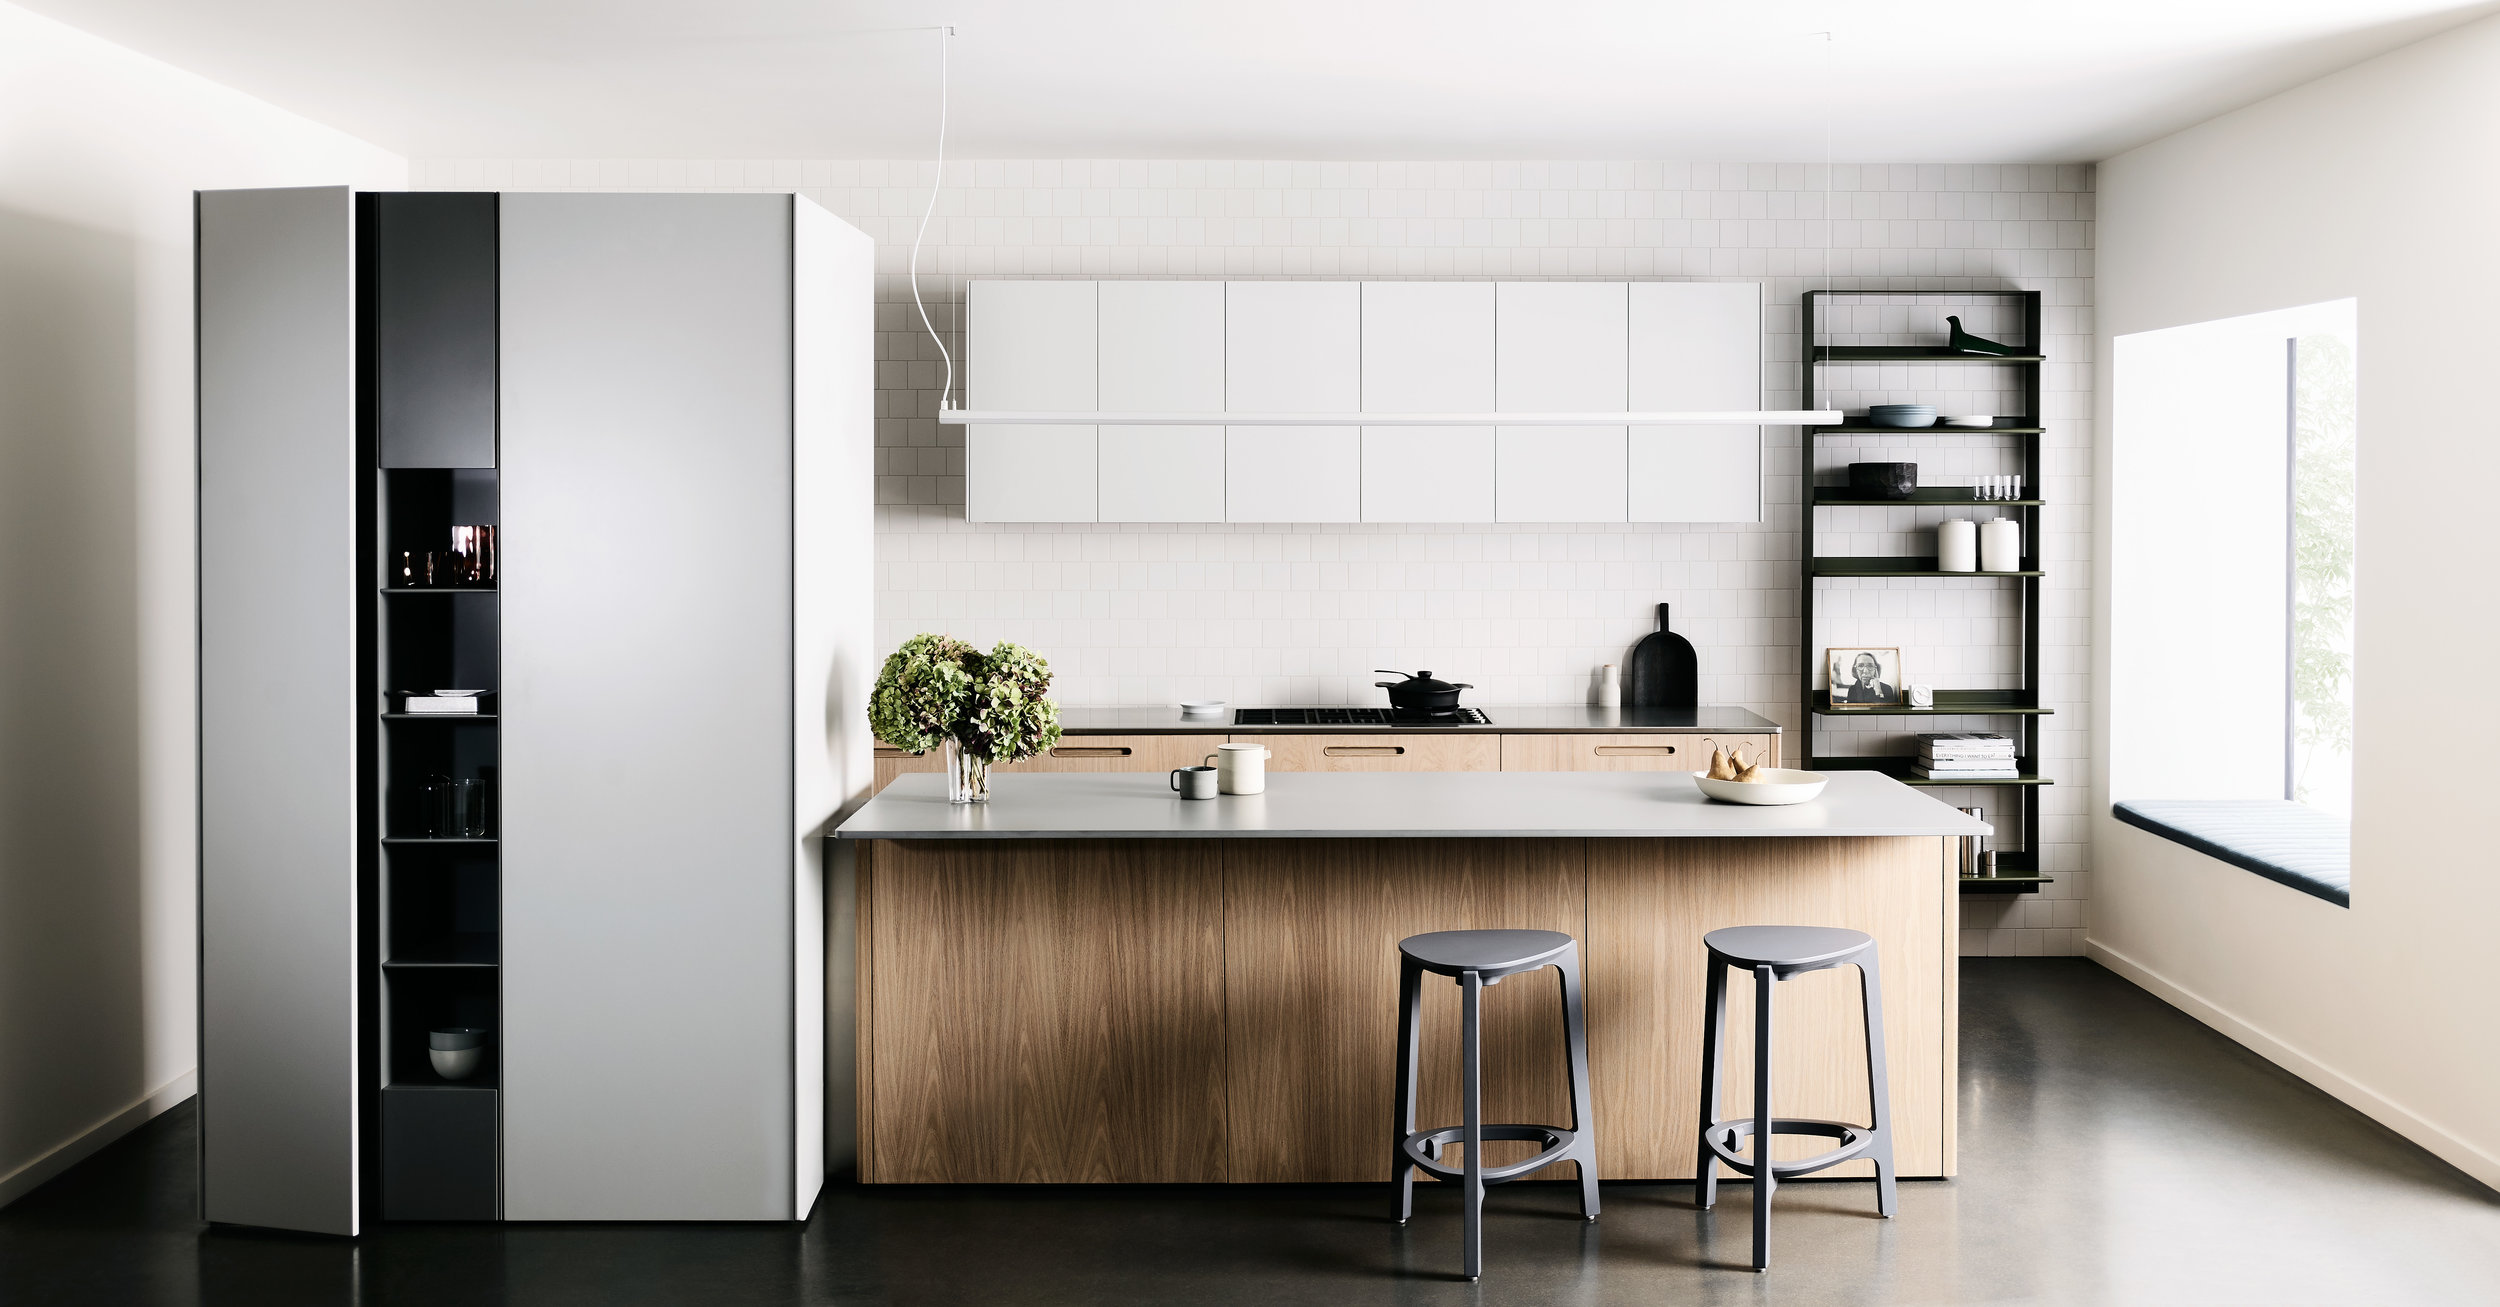 Tableau, a collaborative kitchen designed by Cantilever Interiors and DesignOffice   |  Photo – Haydn Cattach